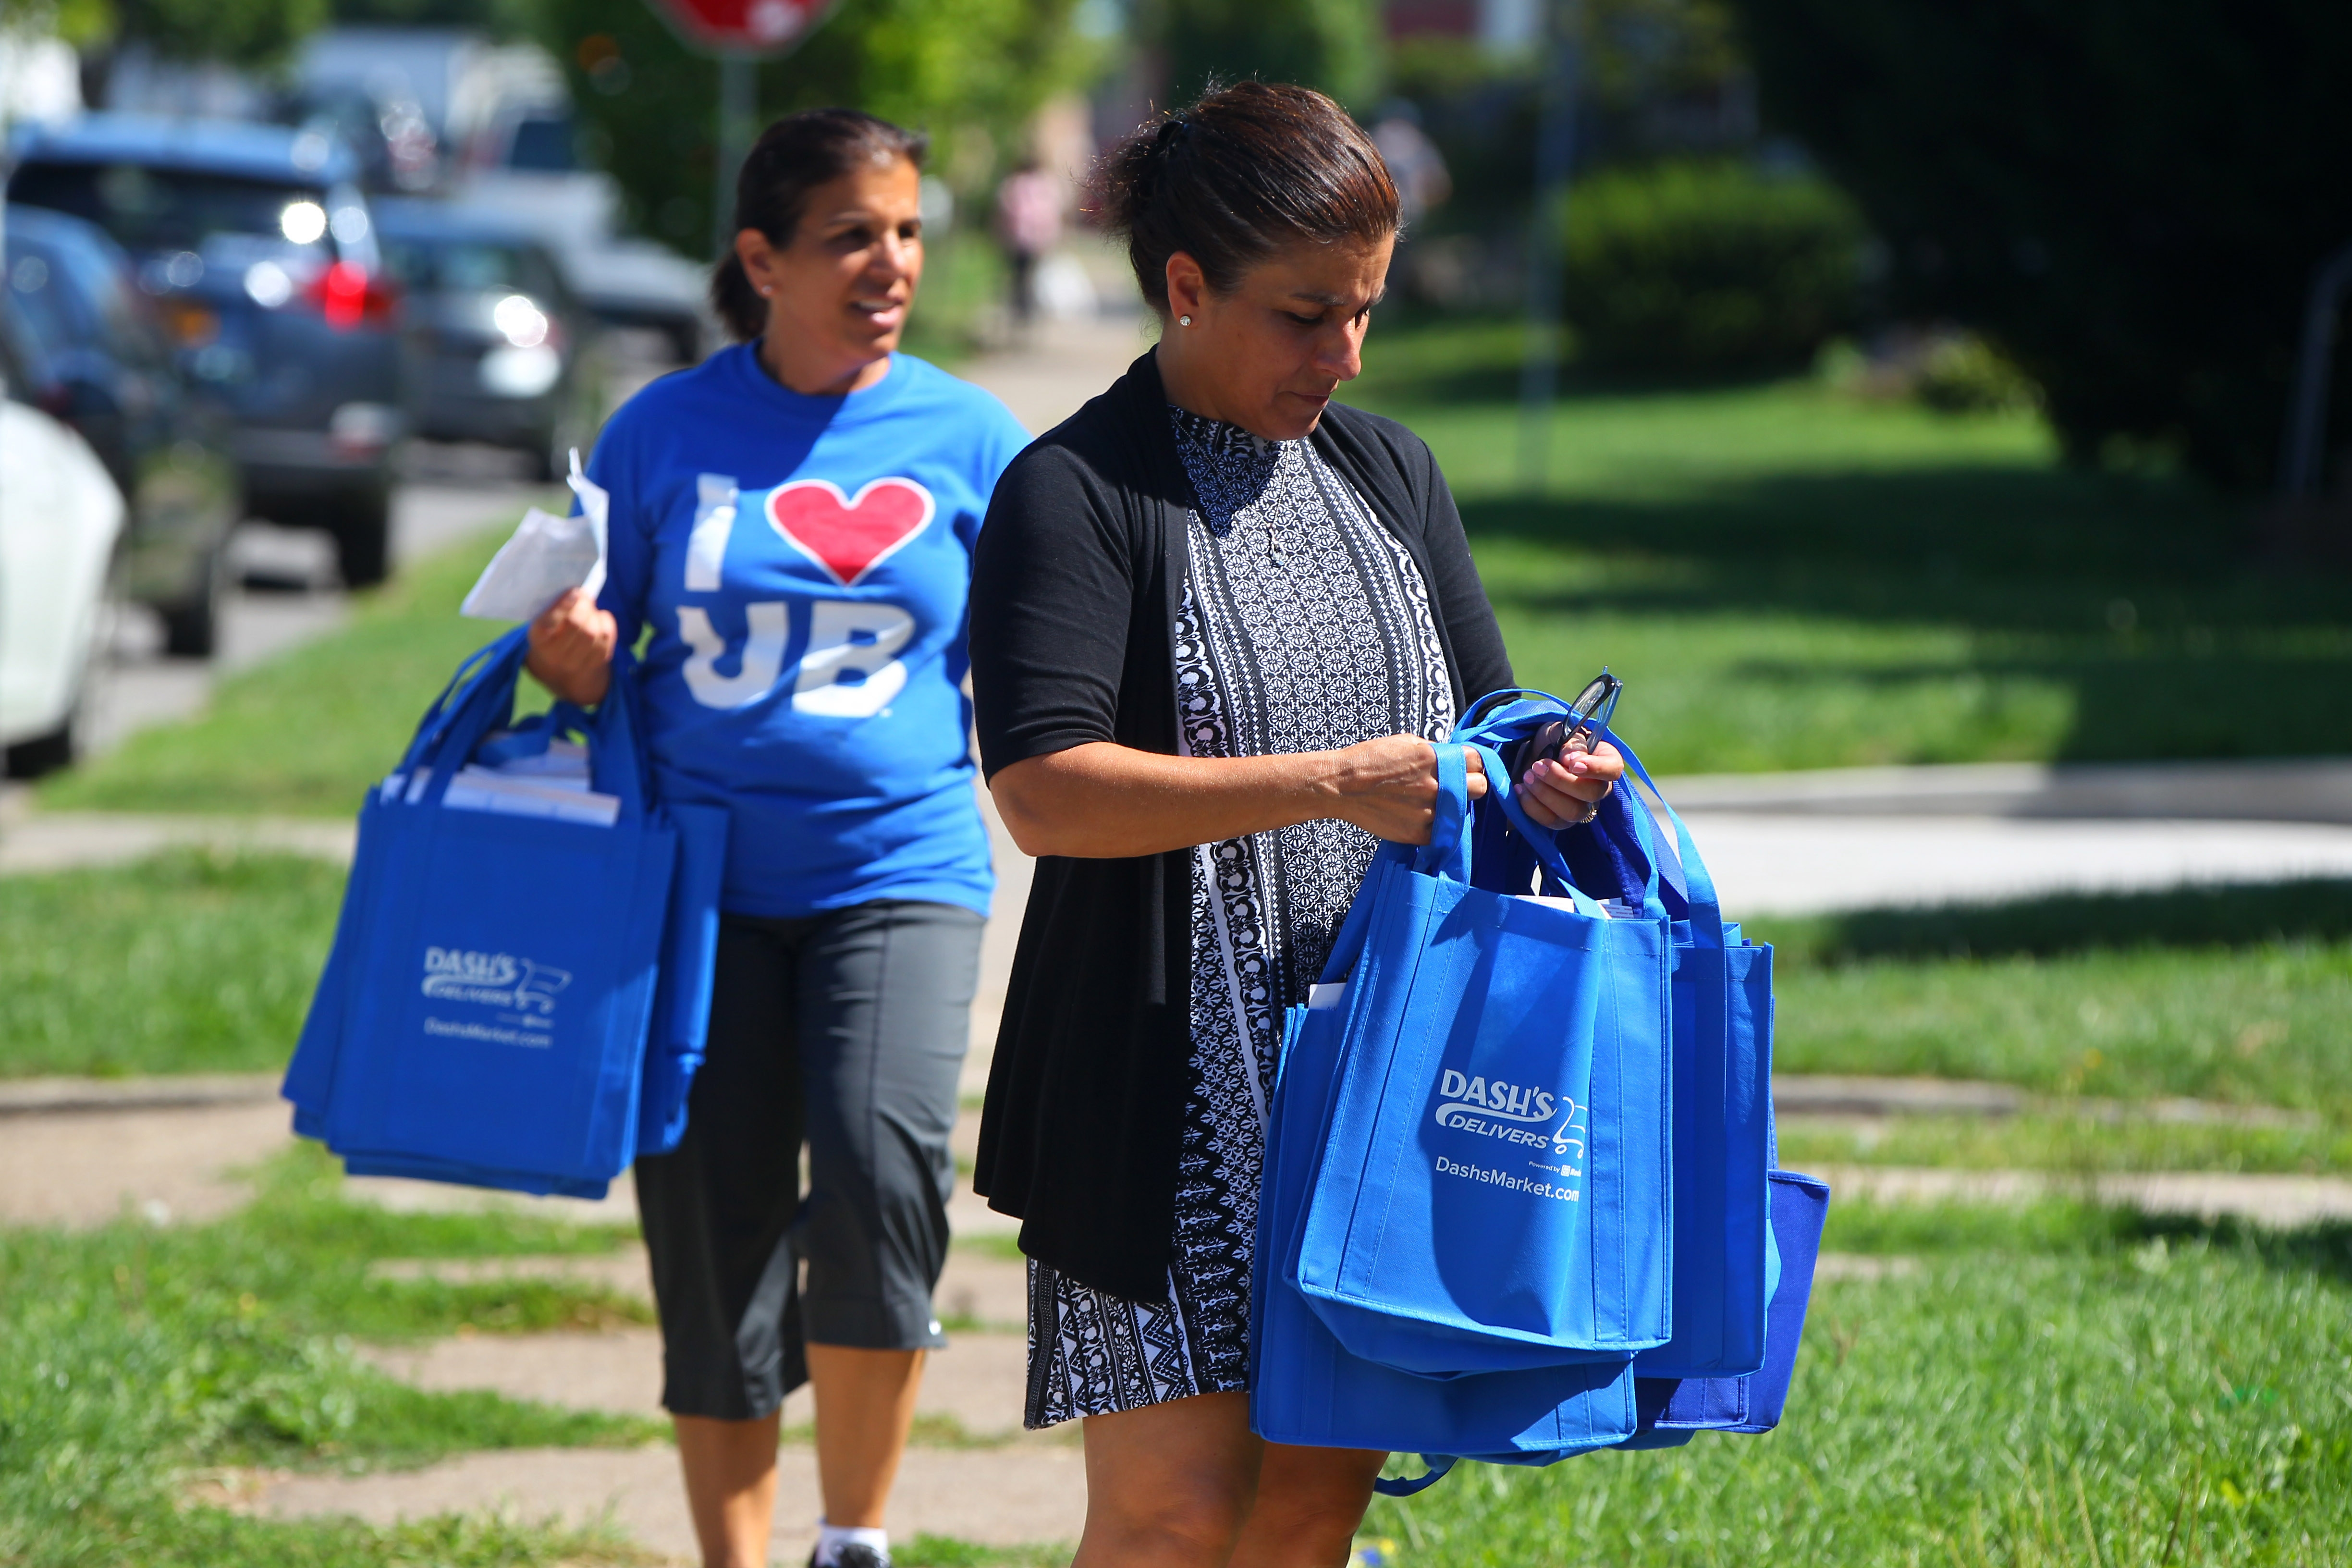 UB staff members Phyllis Floro, left, and Carmella Marinaccio earlier this week passed out informational material to homes in the University District telling students to be good neighbors and telling permanent residents what to do if they have a problem with student neighbors.